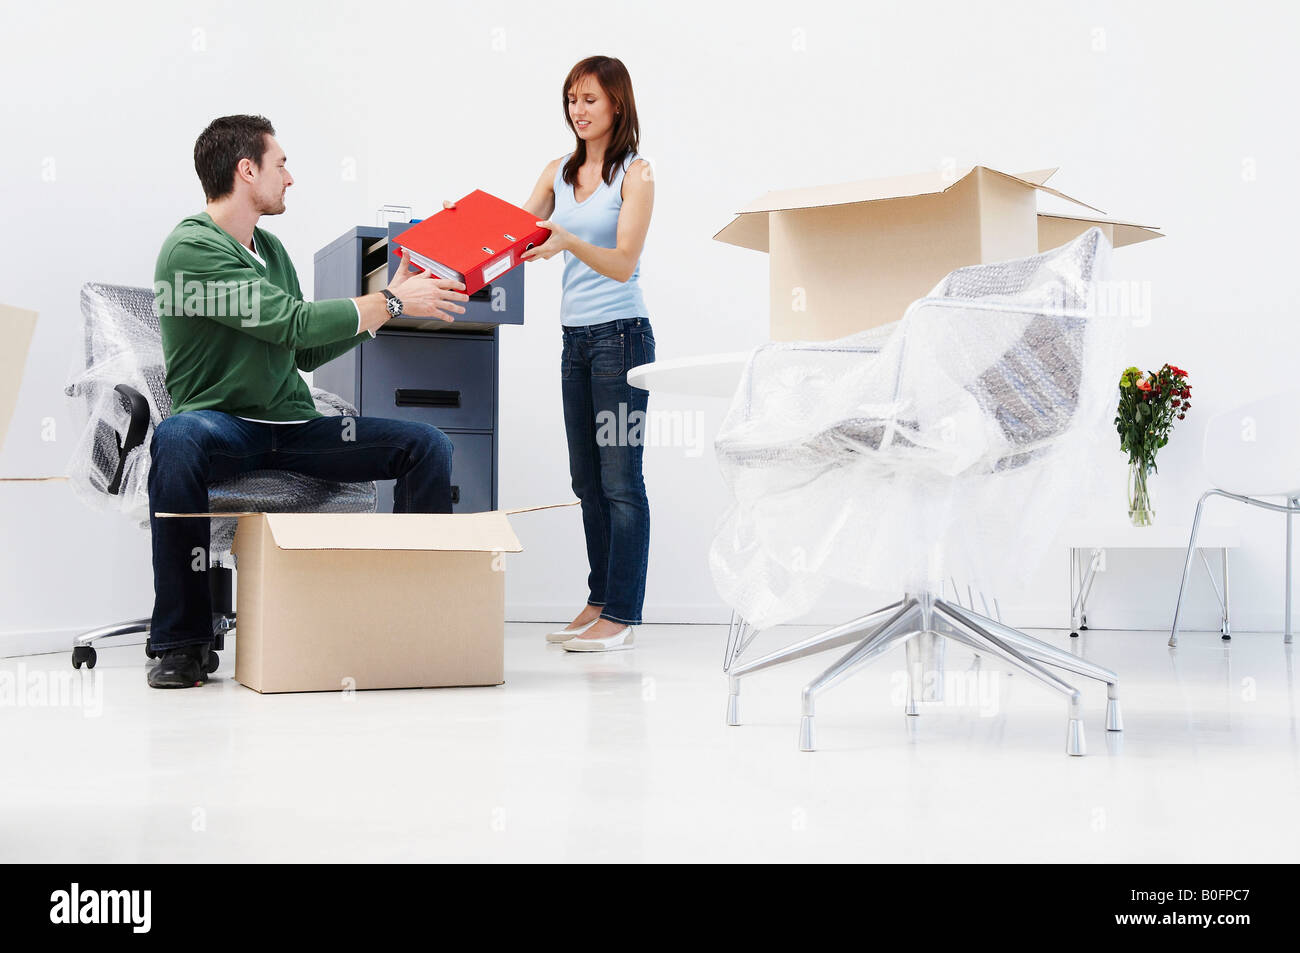 People setting up new office - Stock Image